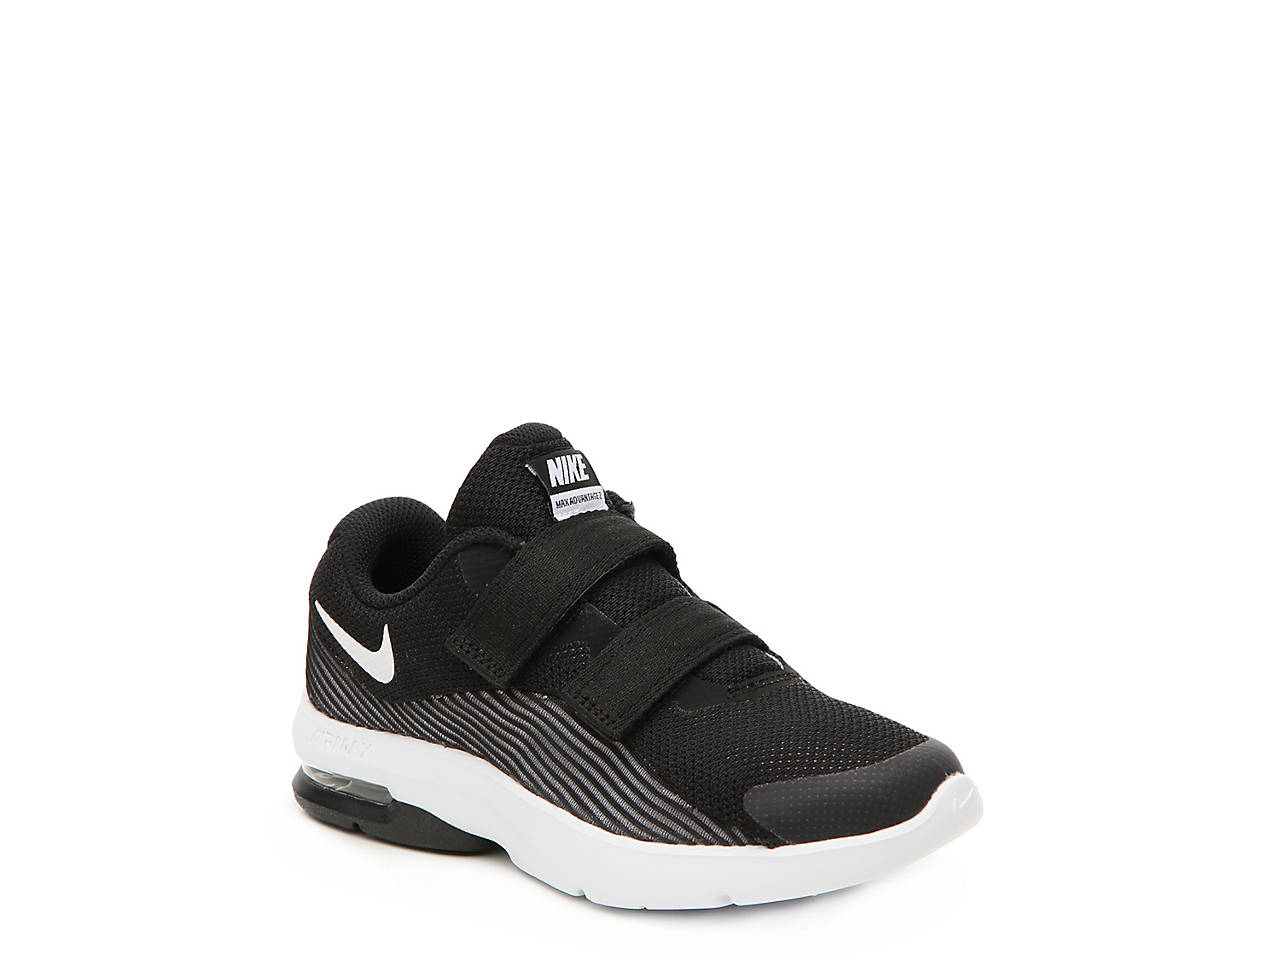 19035ca0eabdf4 Nike Air Max Advantage 2 Toddler   Youth Sneaker Kids Shoes